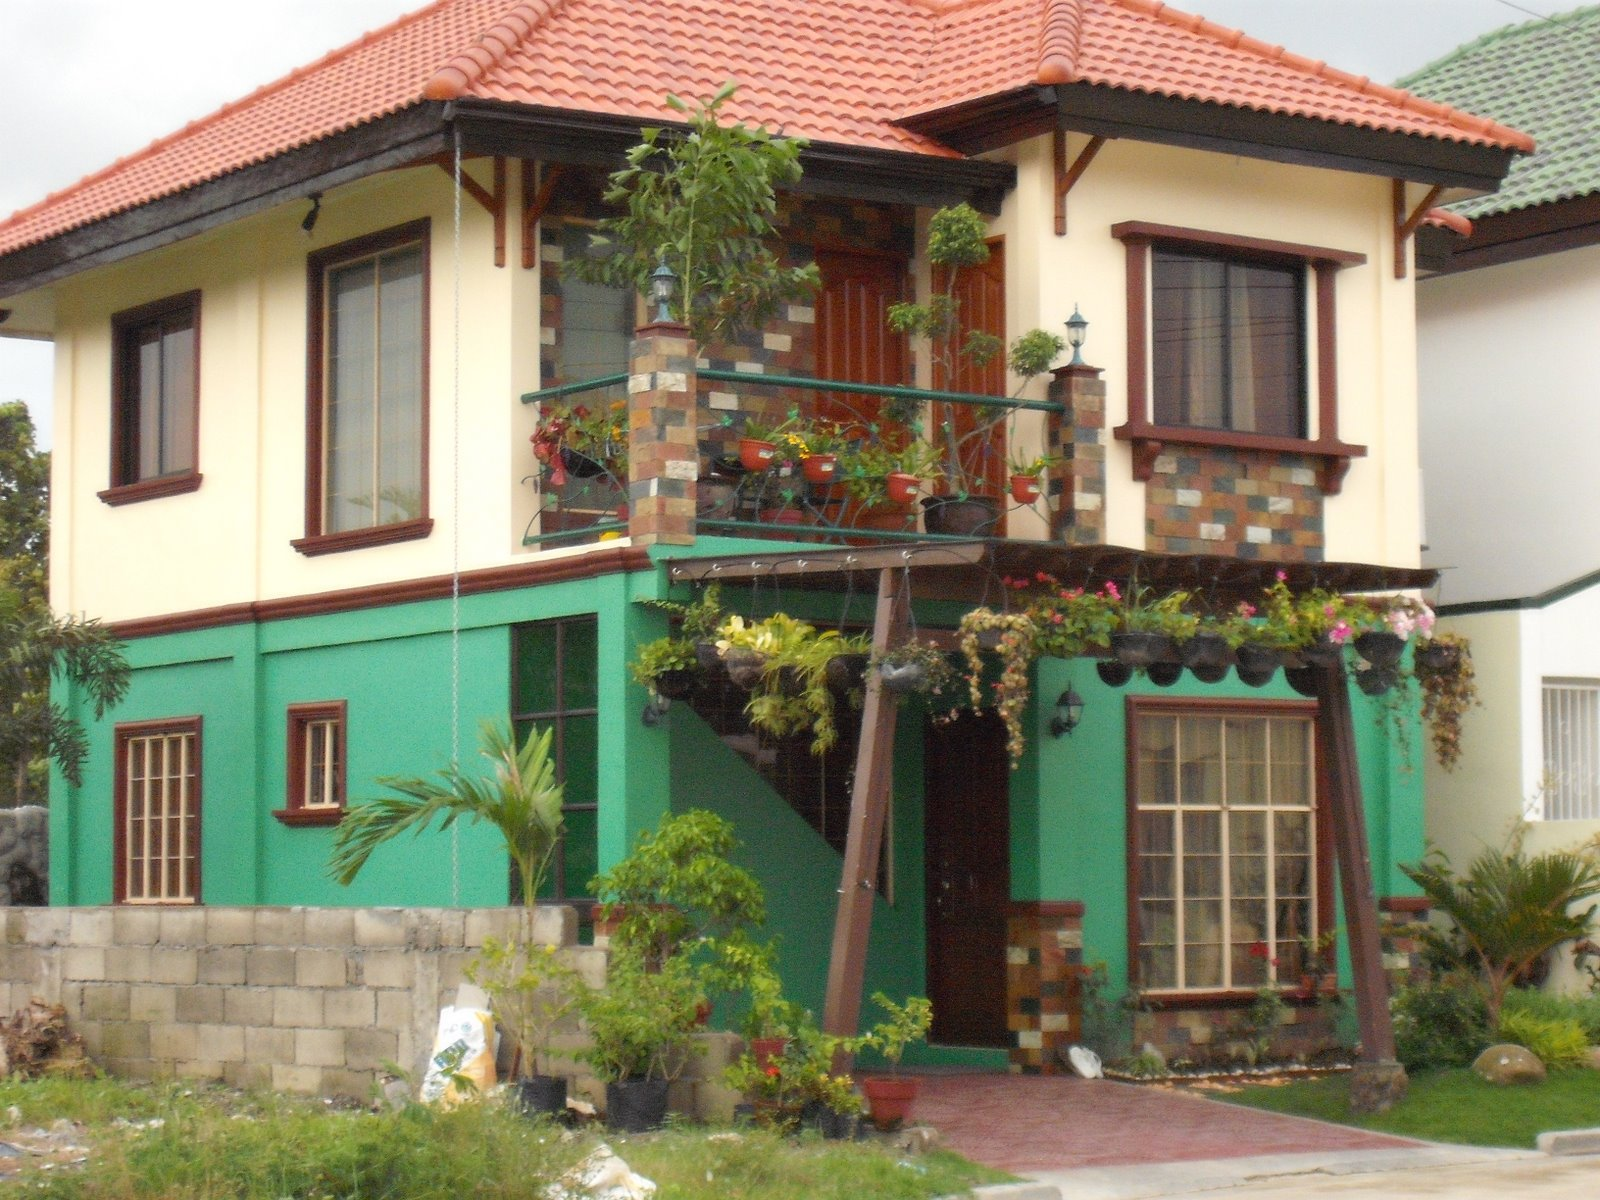 Royal Home Designs: Custom Home Designs Of Royal Residence Iloilo By Pansol